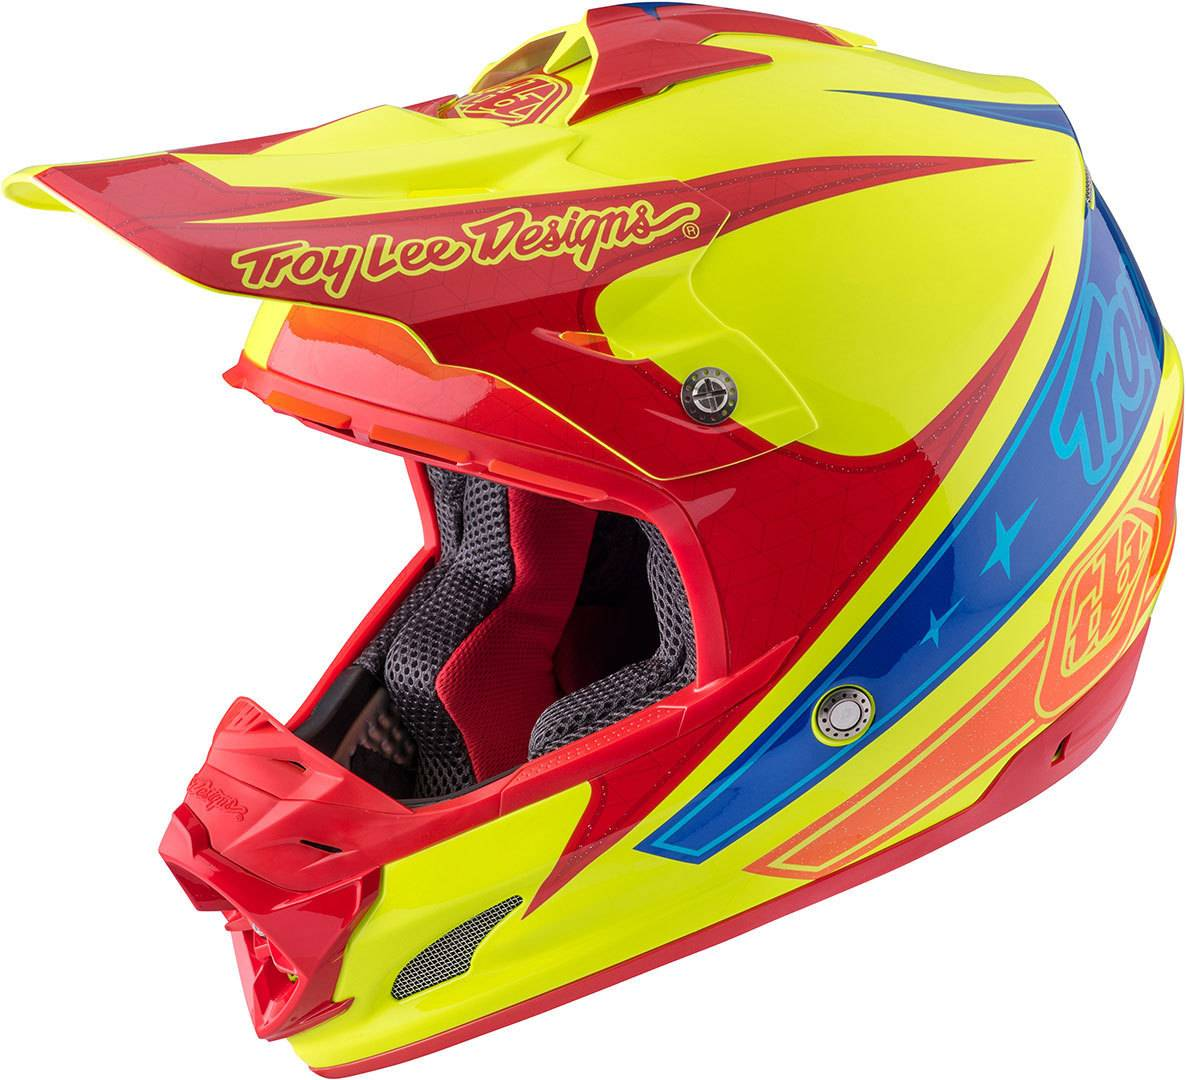 Lee Troy Lee Designs SE3 Corse 2  - Size: Extra Small